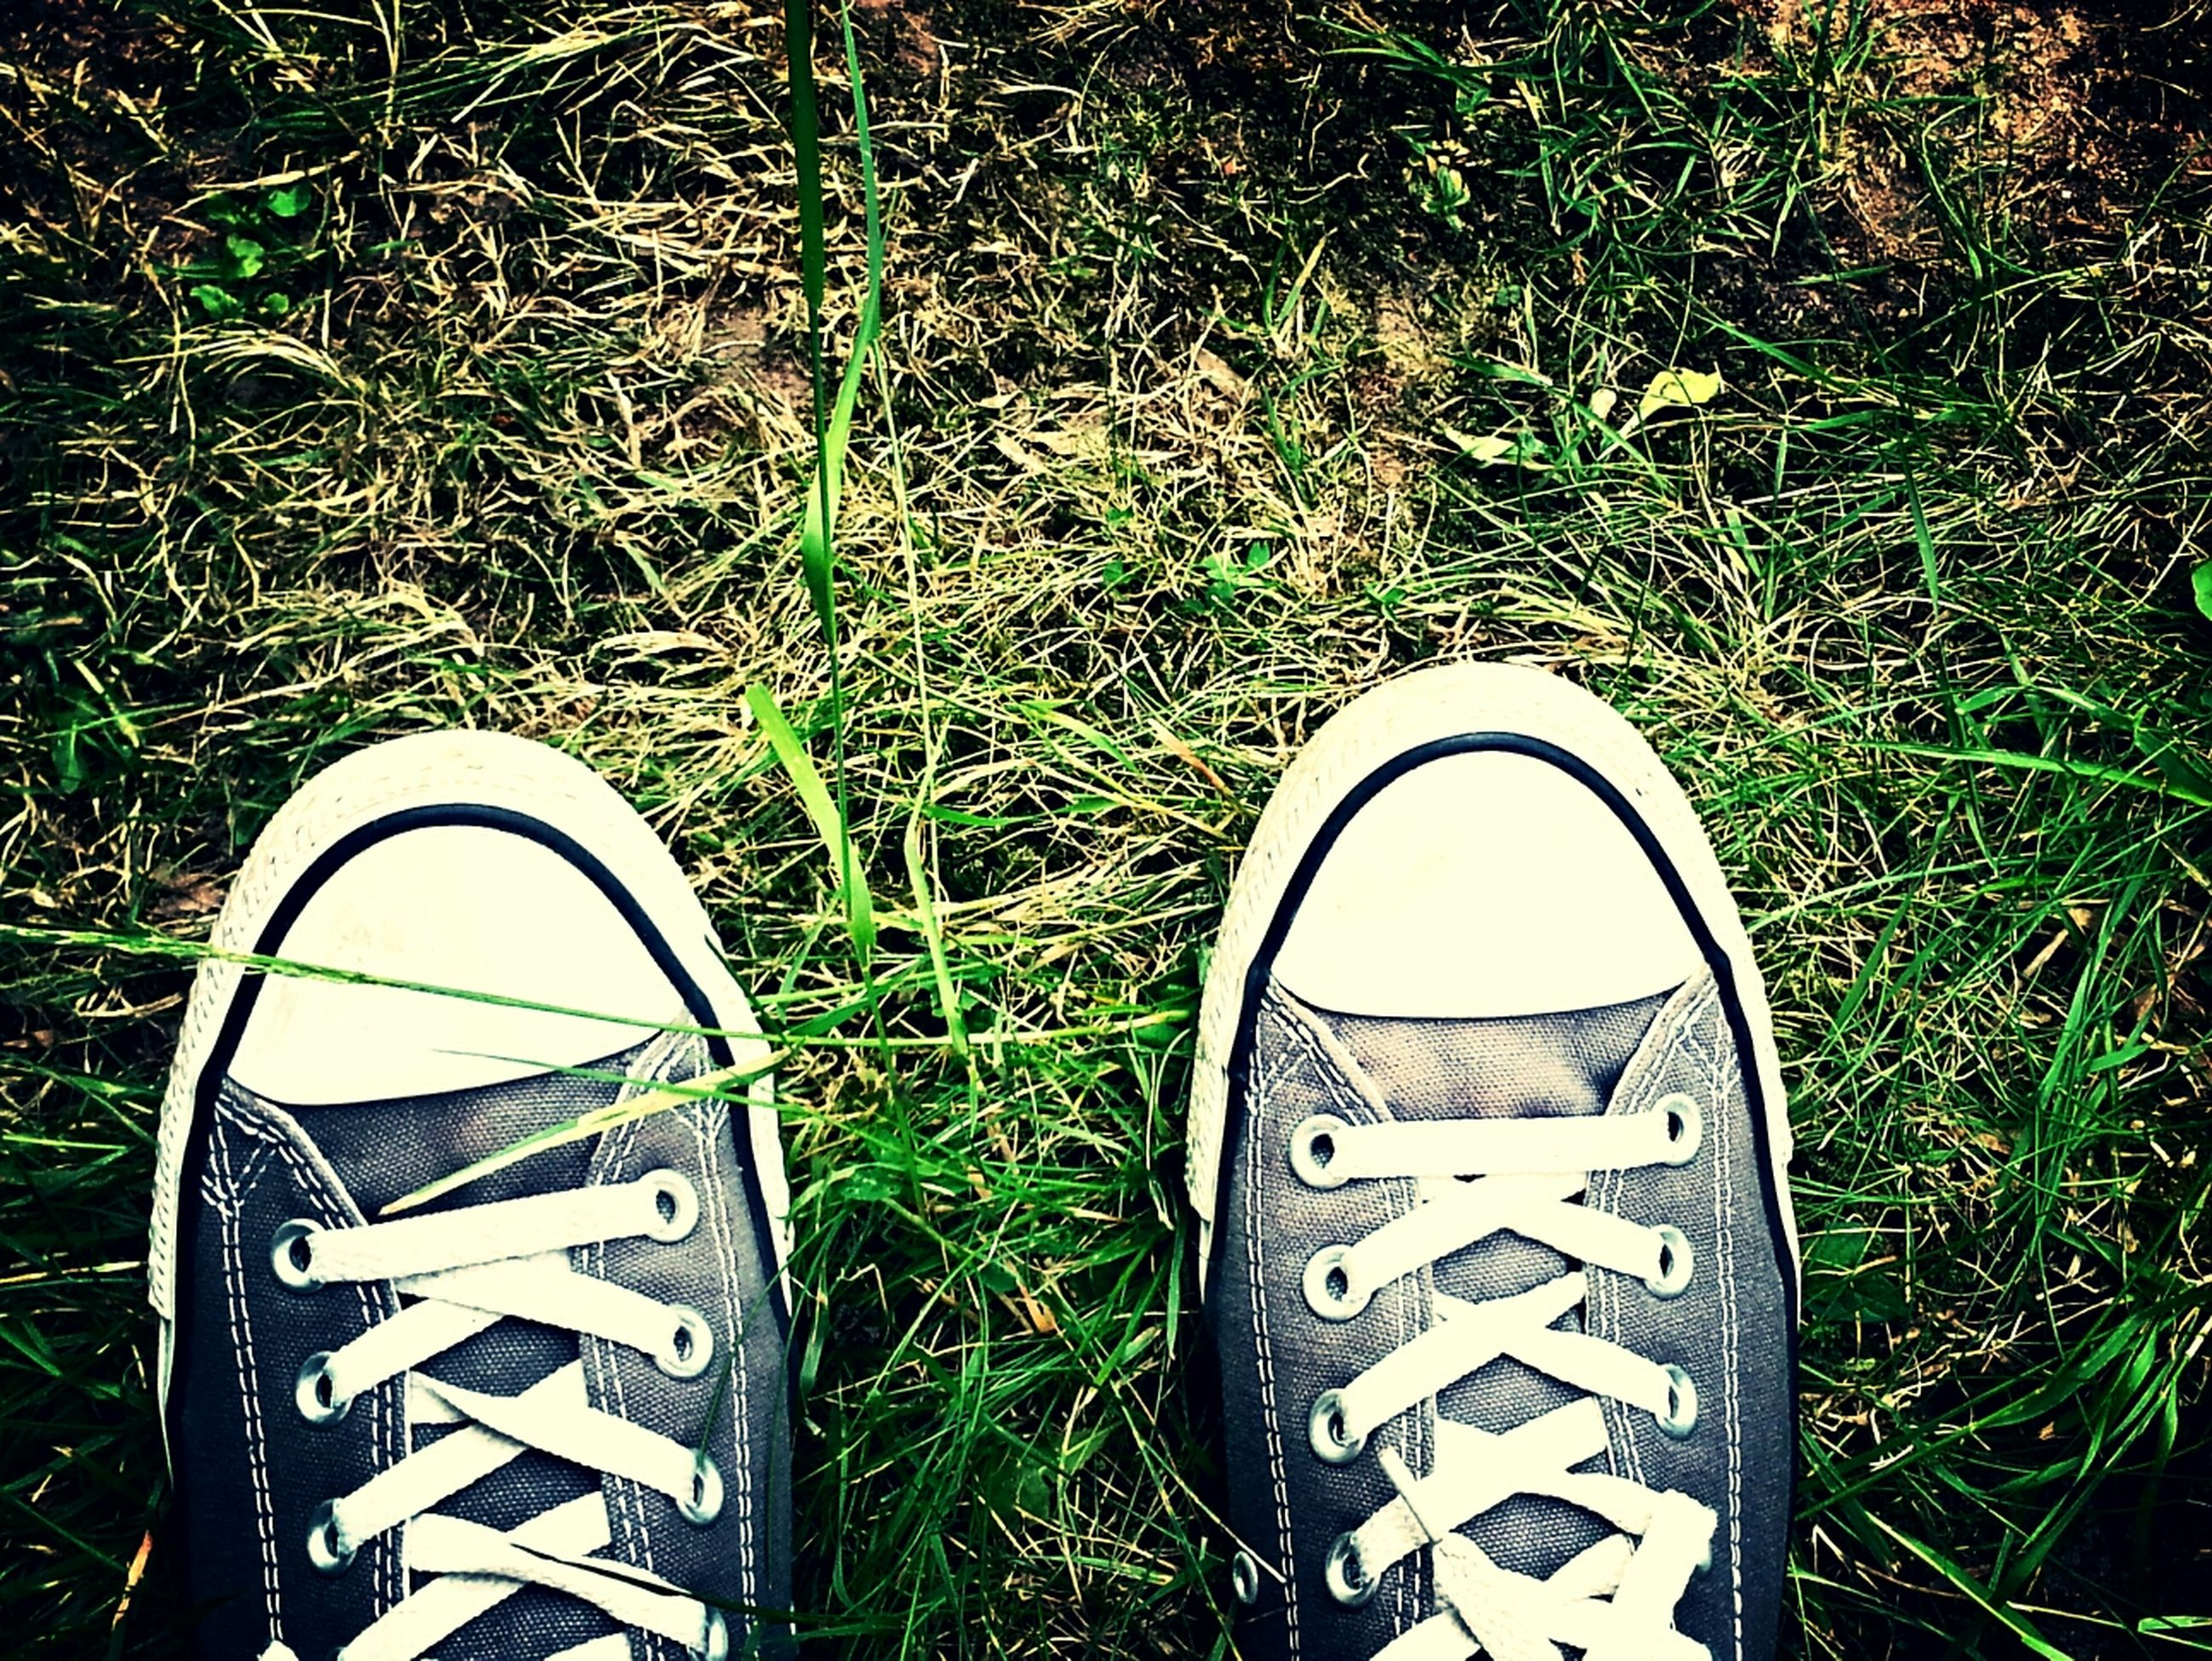 shoe, grass, low section, standing, field, grassy, person, lifestyles, footwear, leisure activity, personal perspective, high angle view, canvas shoe, men, pair, casual clothing, jeans